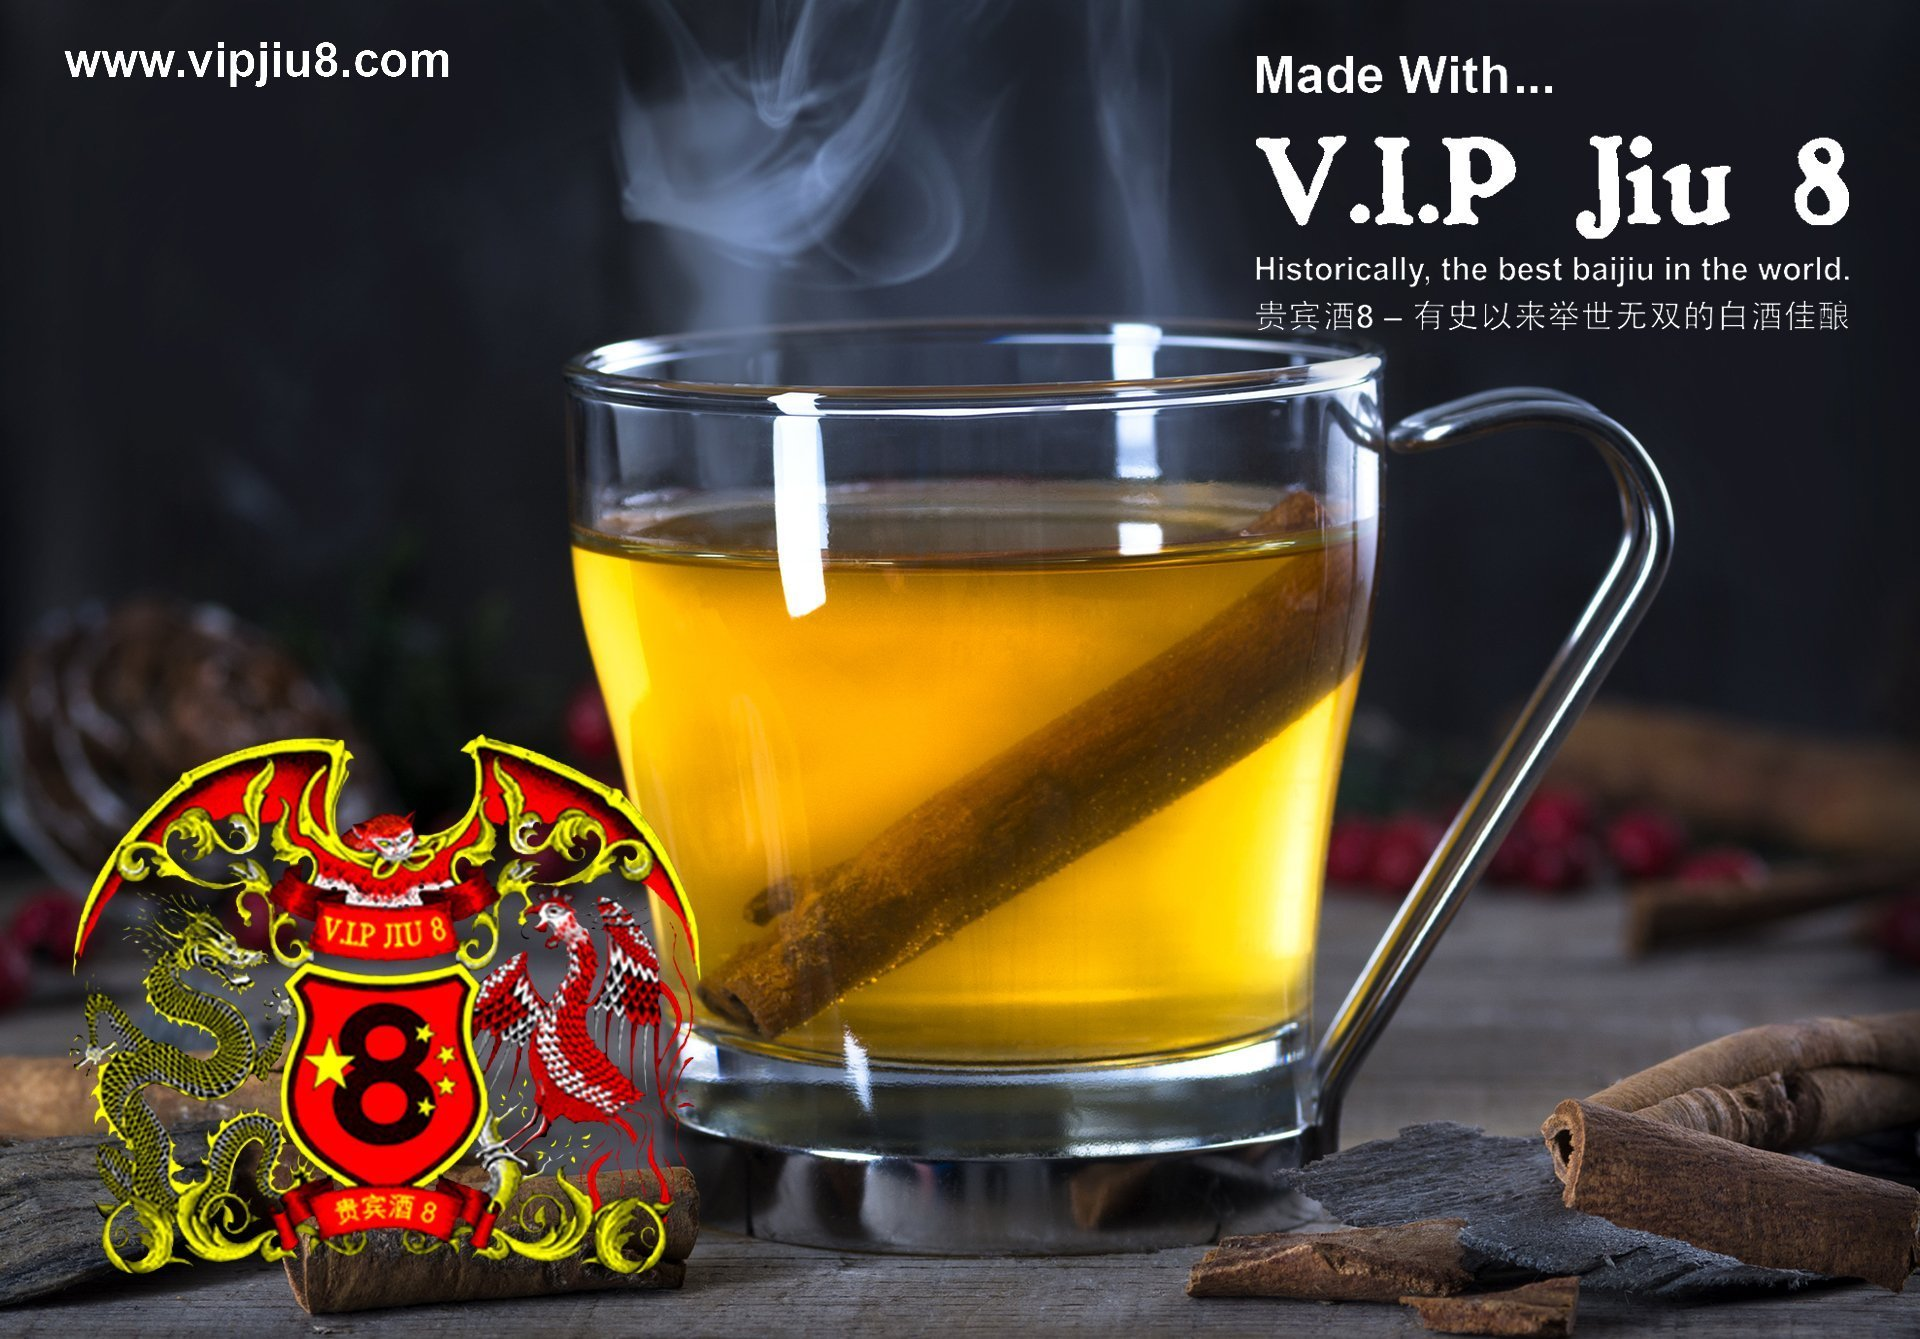 Traditional Easy Hot Toddy Recipes Made With V.I.P Jiu 8 Baijiu